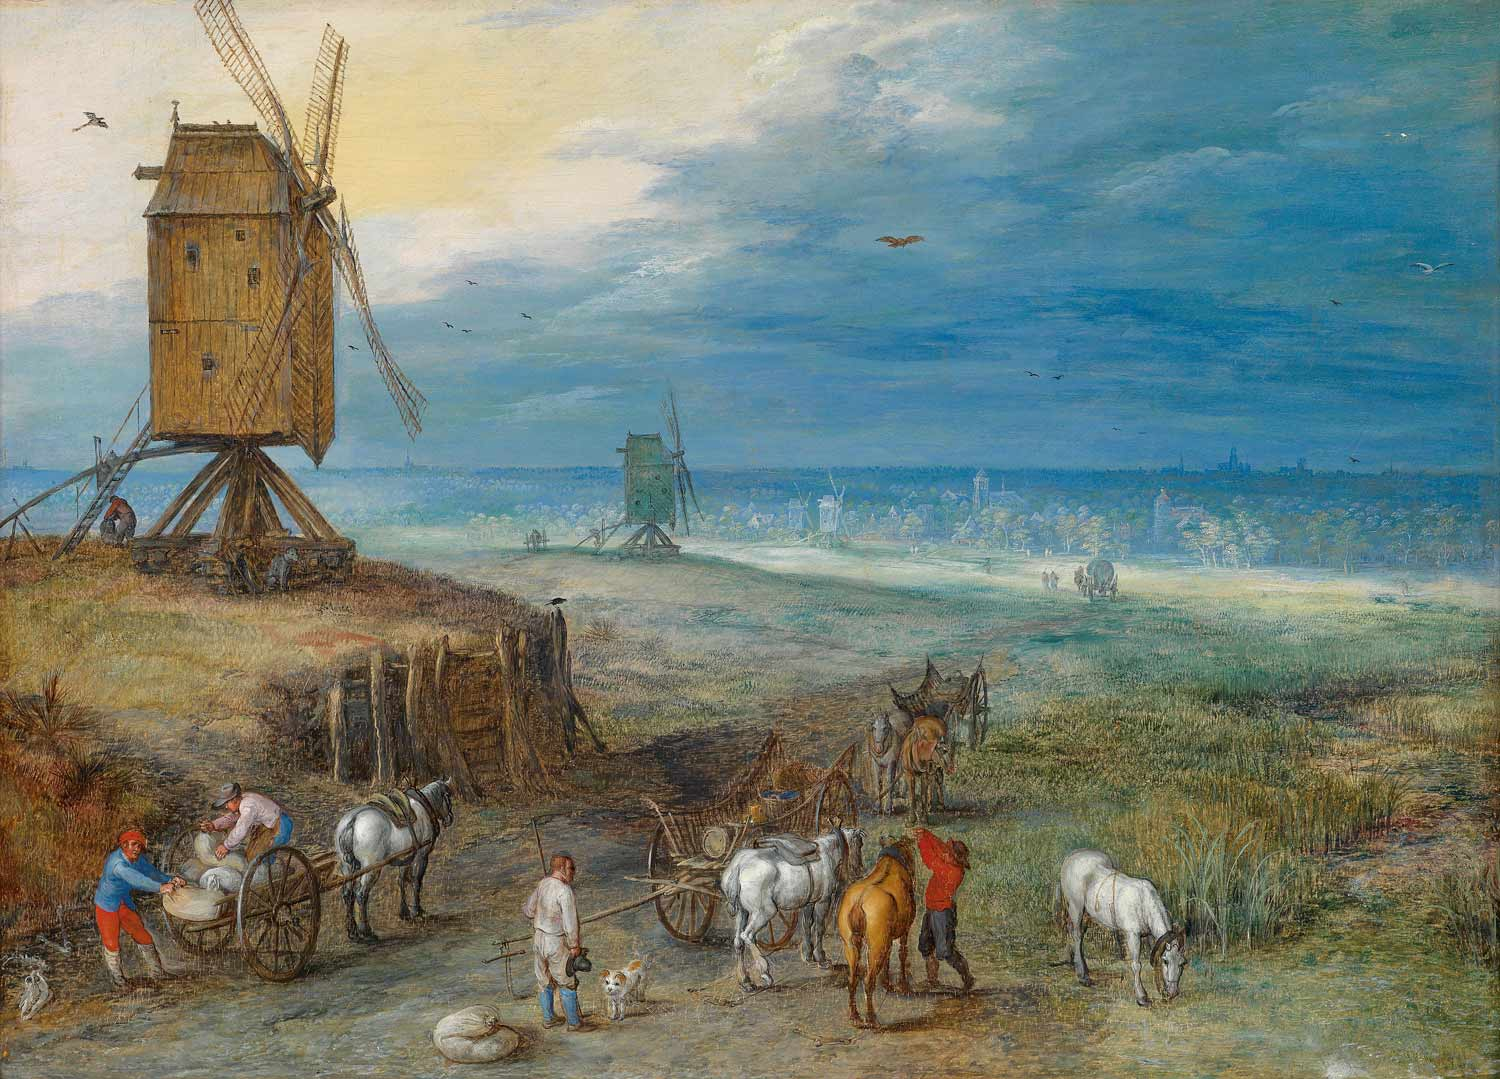 Jan Brueghel I, (1568 – 1625), Die Rast an der Windmühle, Auktion Alte Meister, April 2015